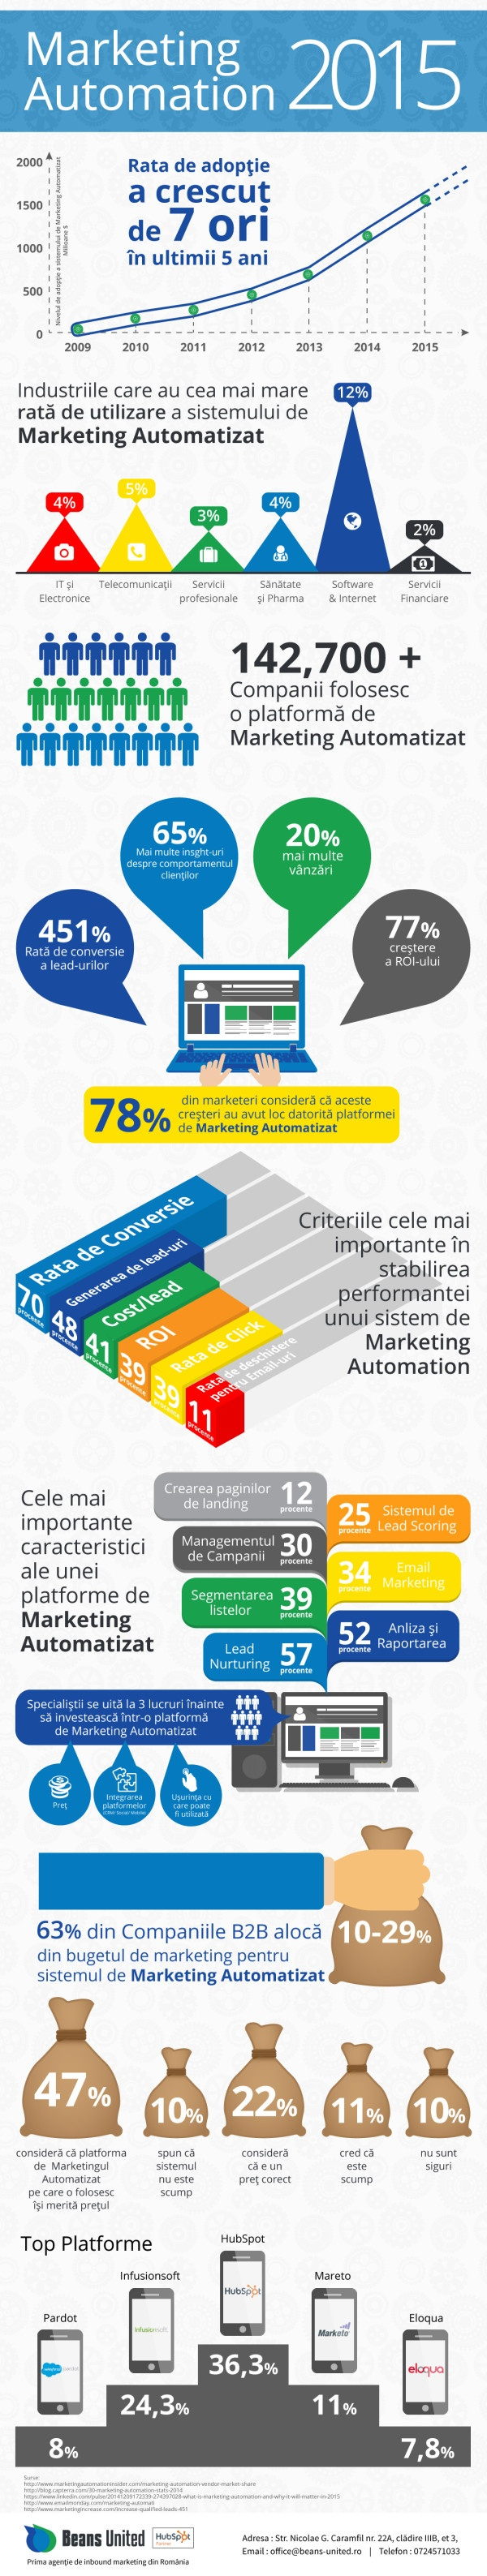 Infografic Marketing Automation 2015